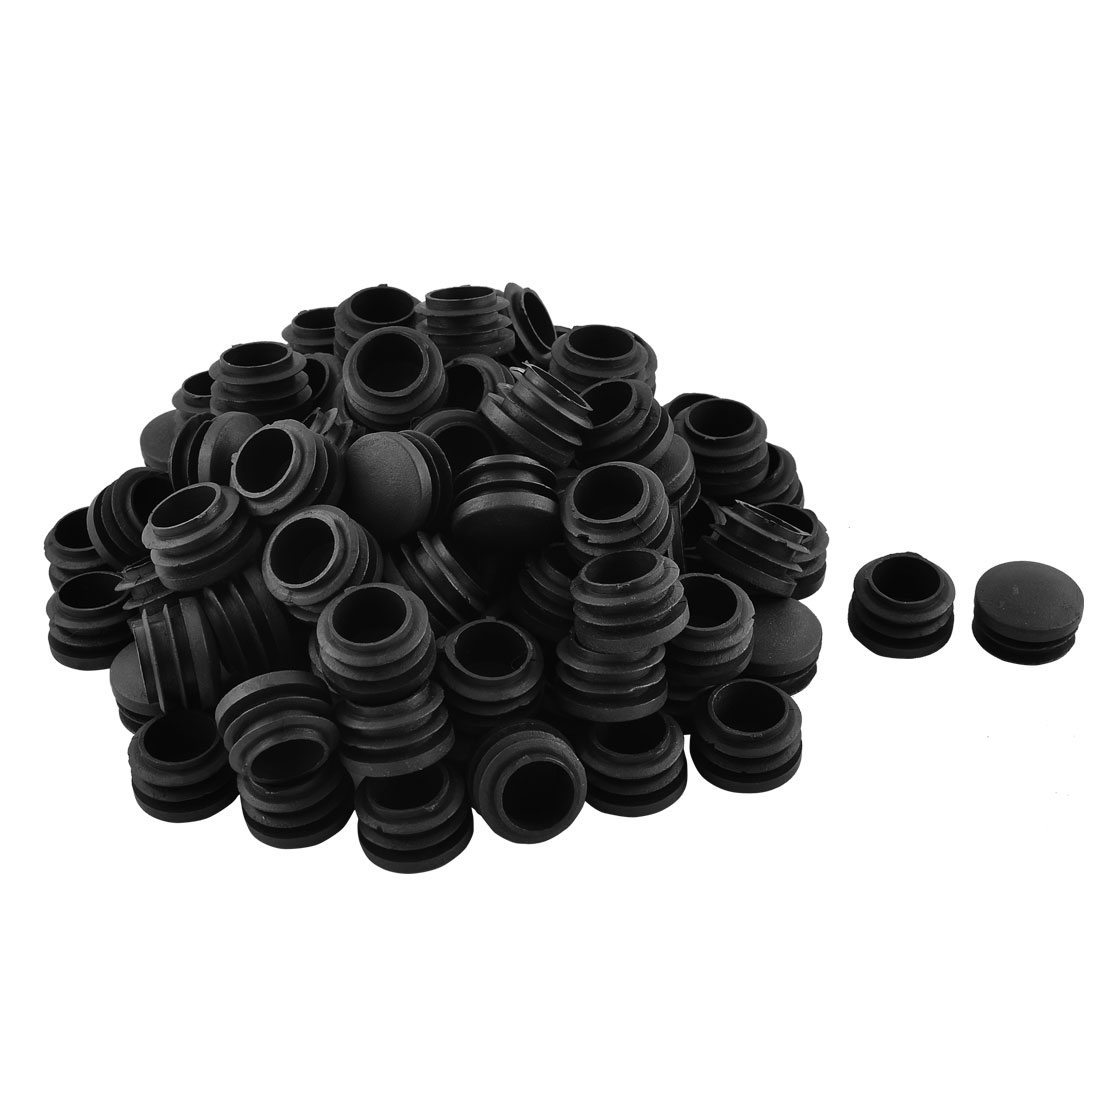 Home Office Plastic Round Shaped Furniture Table Chair Leg Feet Tube Insert Black 100 Pcs